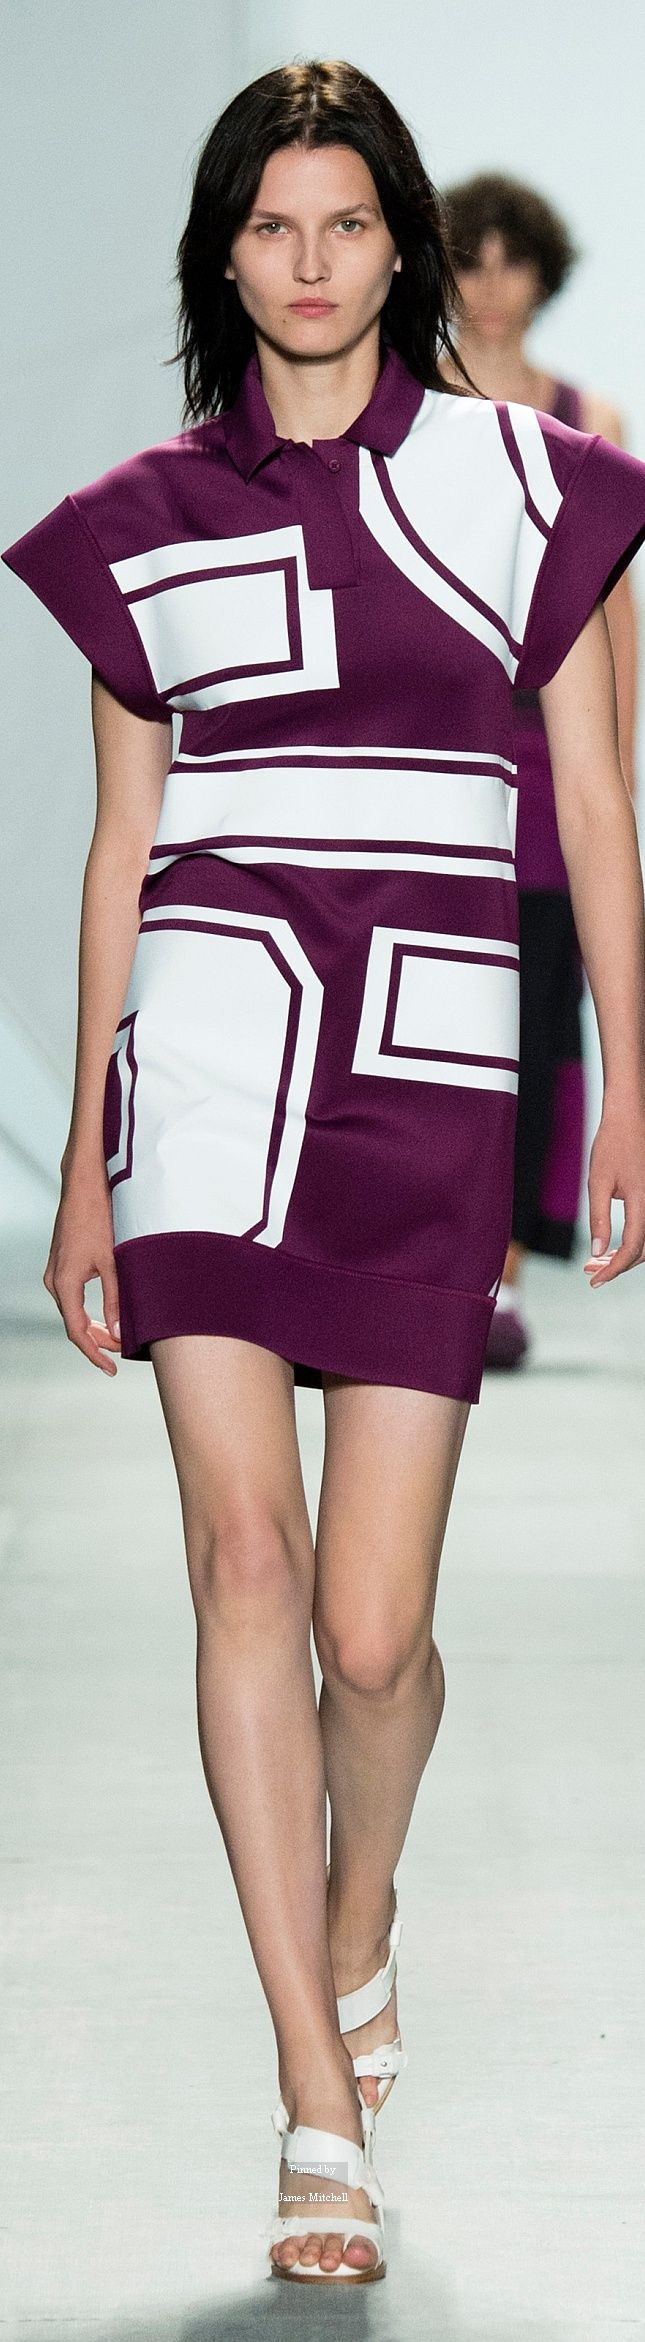 Lacoste Spring Summer 2015 Ready-To-Wear collection